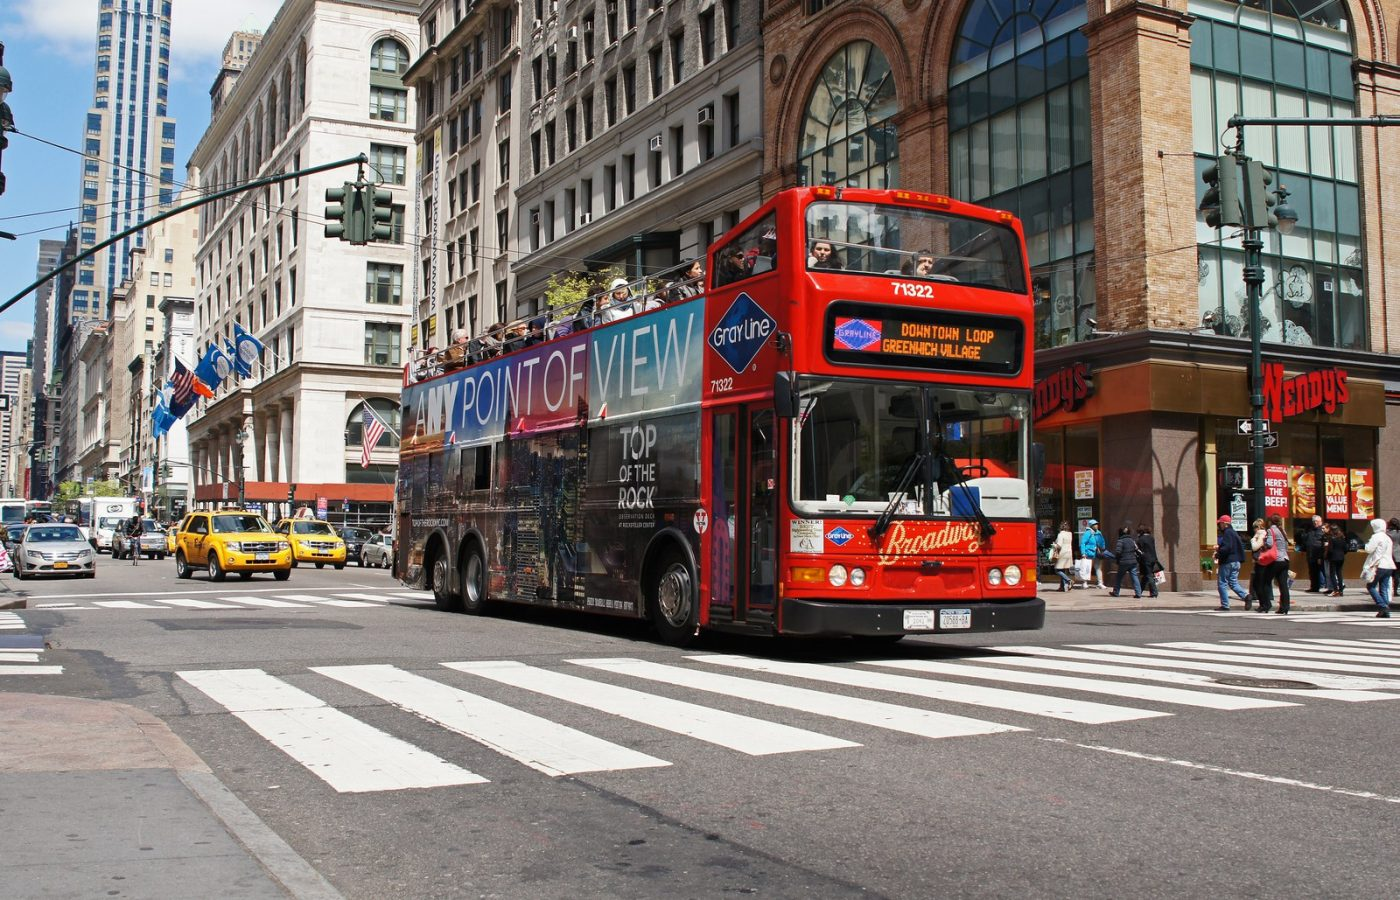 With unlimited hop-on hop-off access on Downtown, Uptown, and Brooklyn tours, we can Virtual Reality· Immersive Experience· Unlimited Access· Spectacular Views.